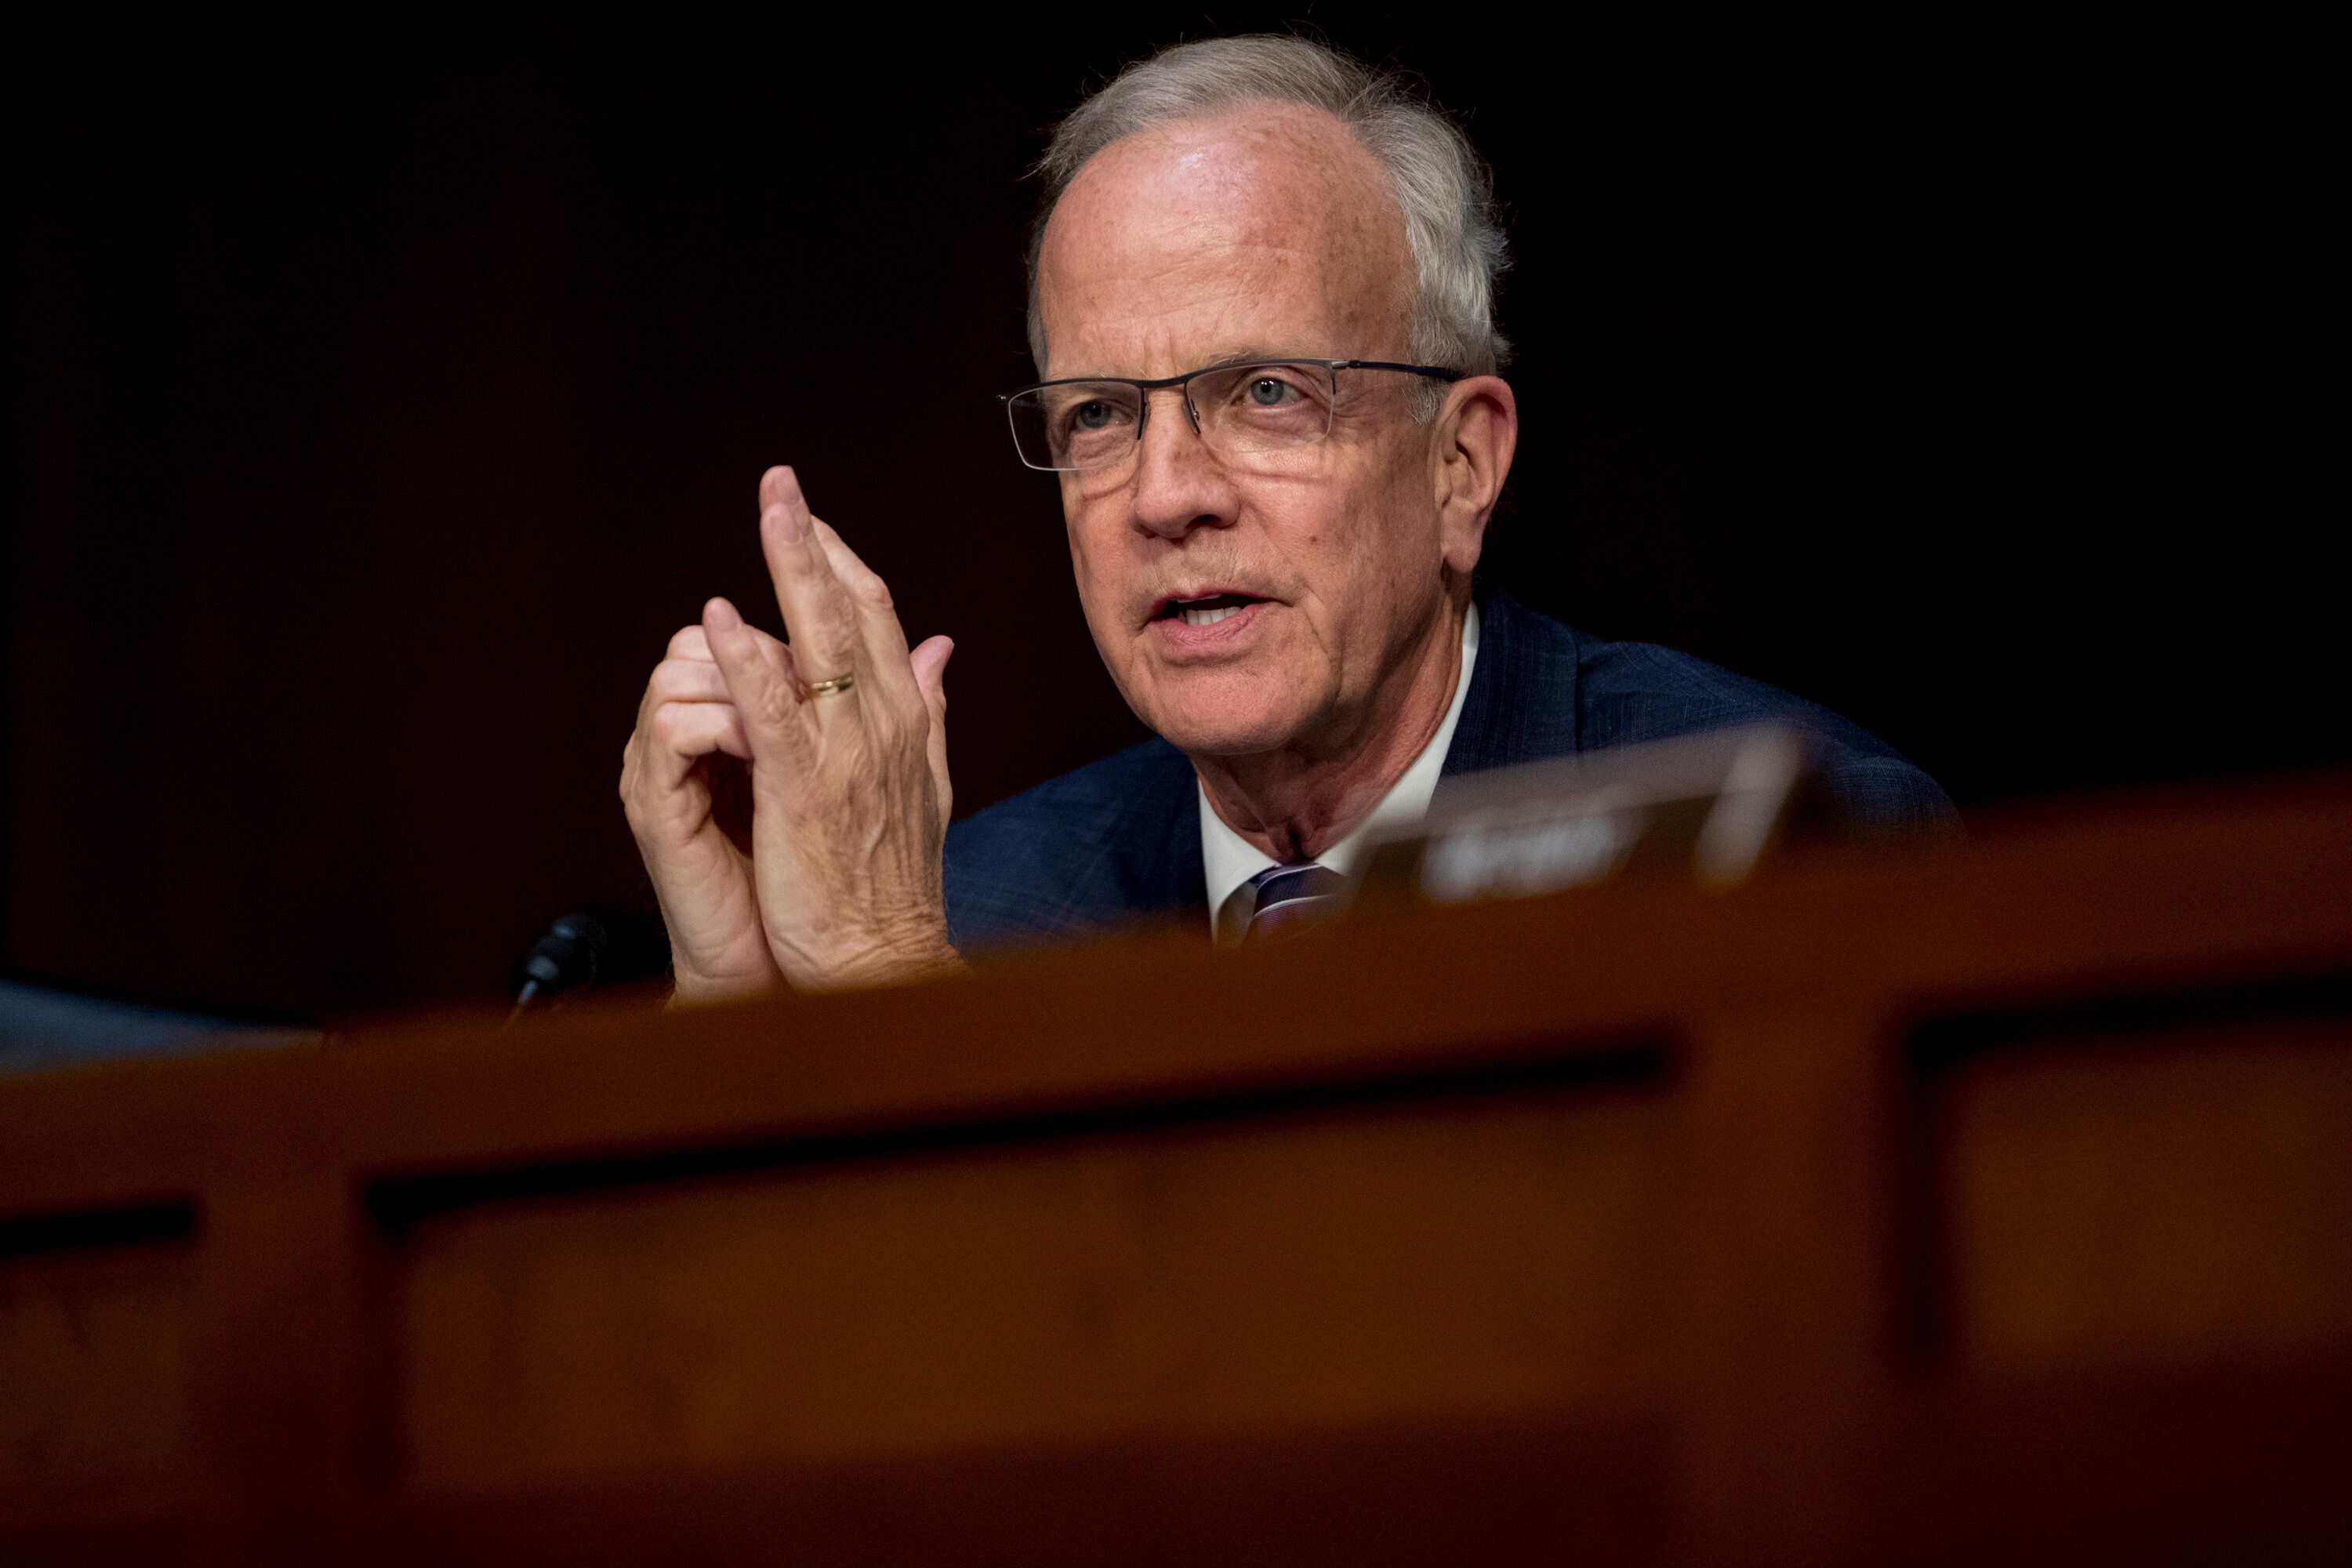 Sen. Jerry Moran, R-Kan., speaks as Federal Aviation Administration Acting Administrator Daniel Elwell, National Transportation Safety Board Chairman Robert Sumwalt, and Department of Transportation Inspector General Calvin Scovel appear before a Senate Transportation subcommittee hearing on commercial airline safety, on Capitol Hill, Wednesday, March 27, 2019, in Washington. Two recent Boeing 737 MAX crashes, in Ethiopia and Indonesia, which killed nearly 350 people, have lead to the temporary grounding of models of the aircraft and to increased scrutiny of the FAA's delegation of a number of aspects of the certification process to the aircraft manufacturers themselves. (AP Photo/Andrew Harnik)